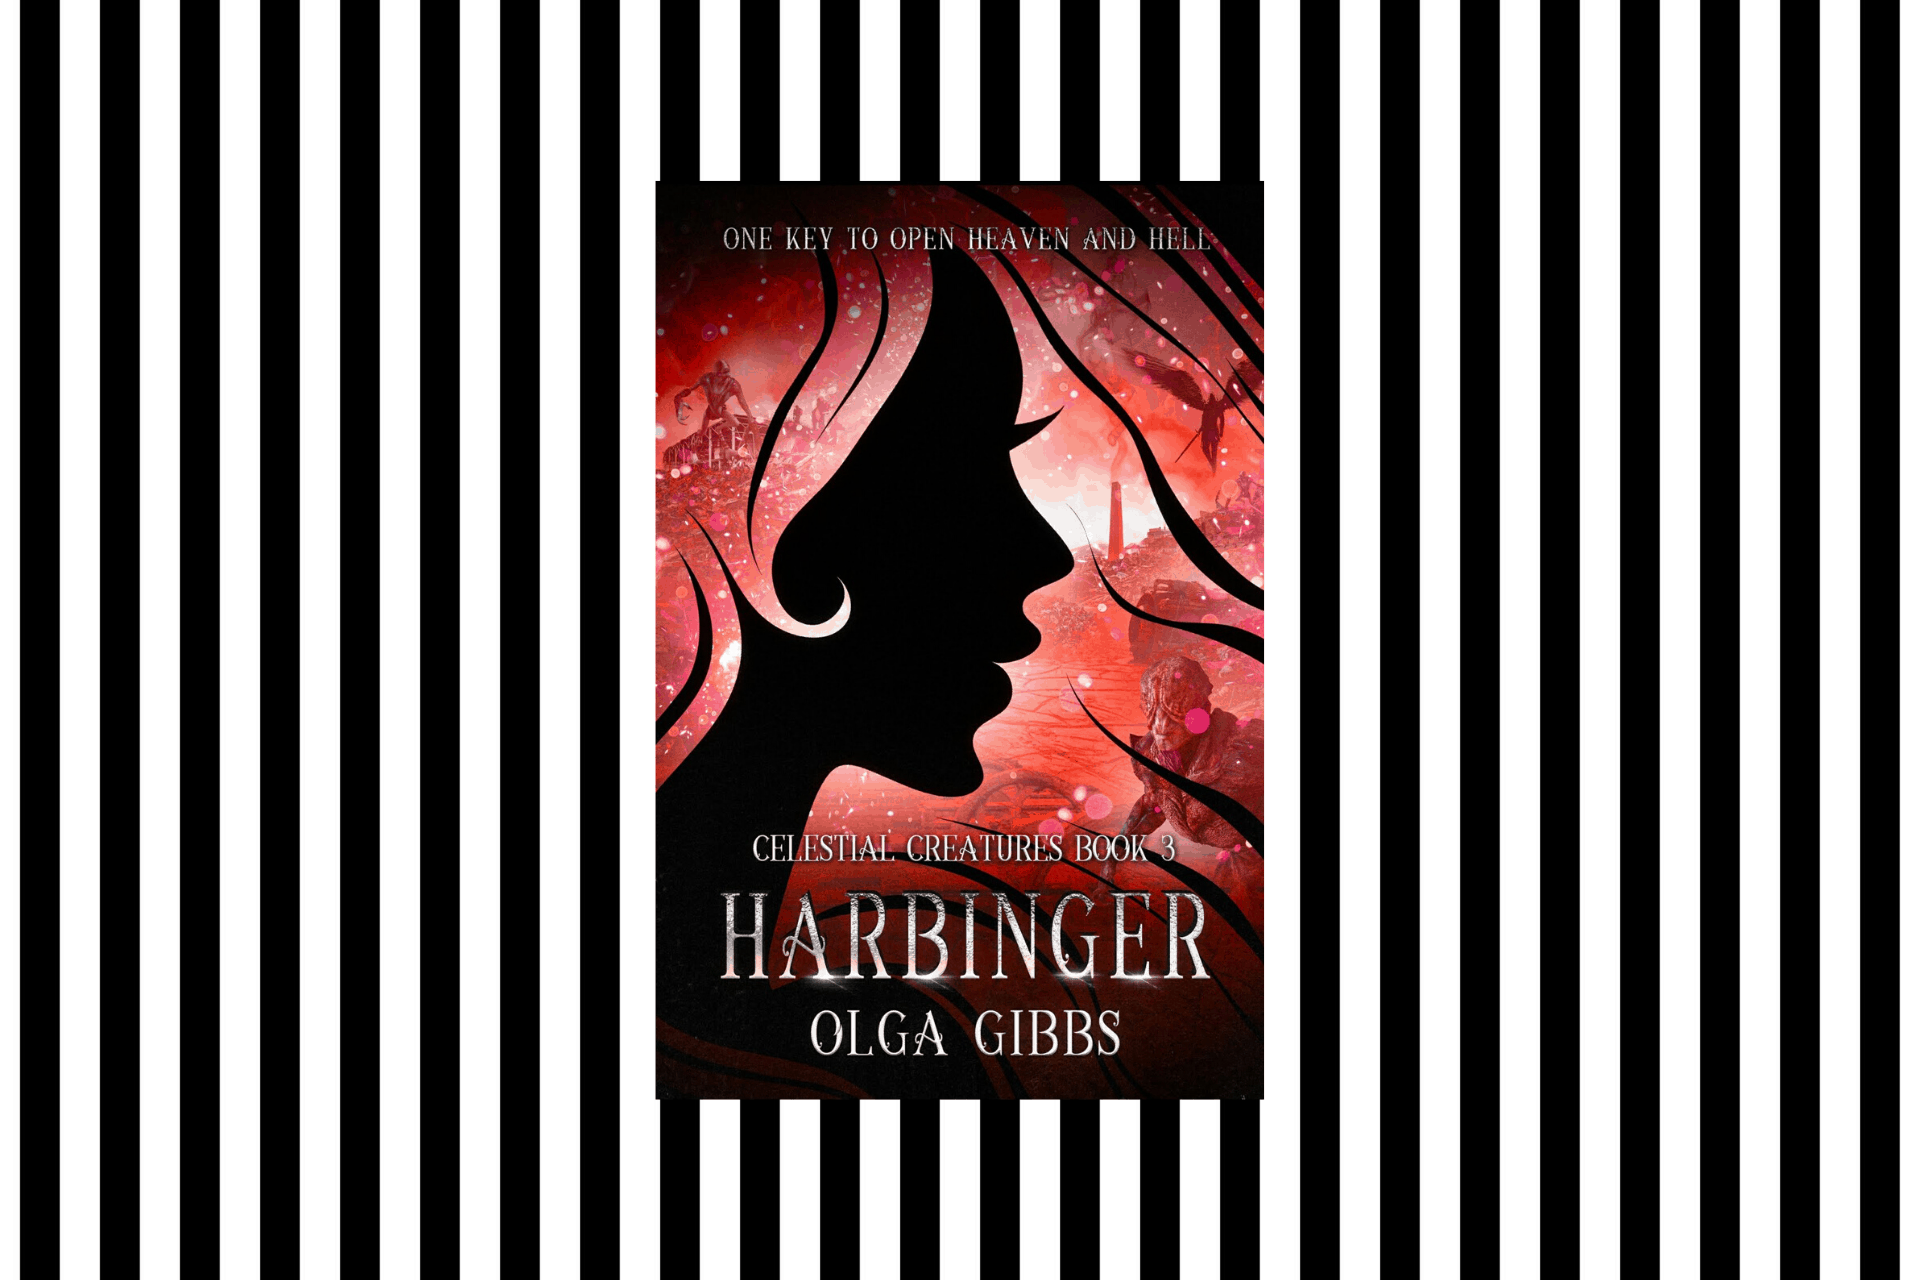 The cover of Harbinger by Olga Gibbs